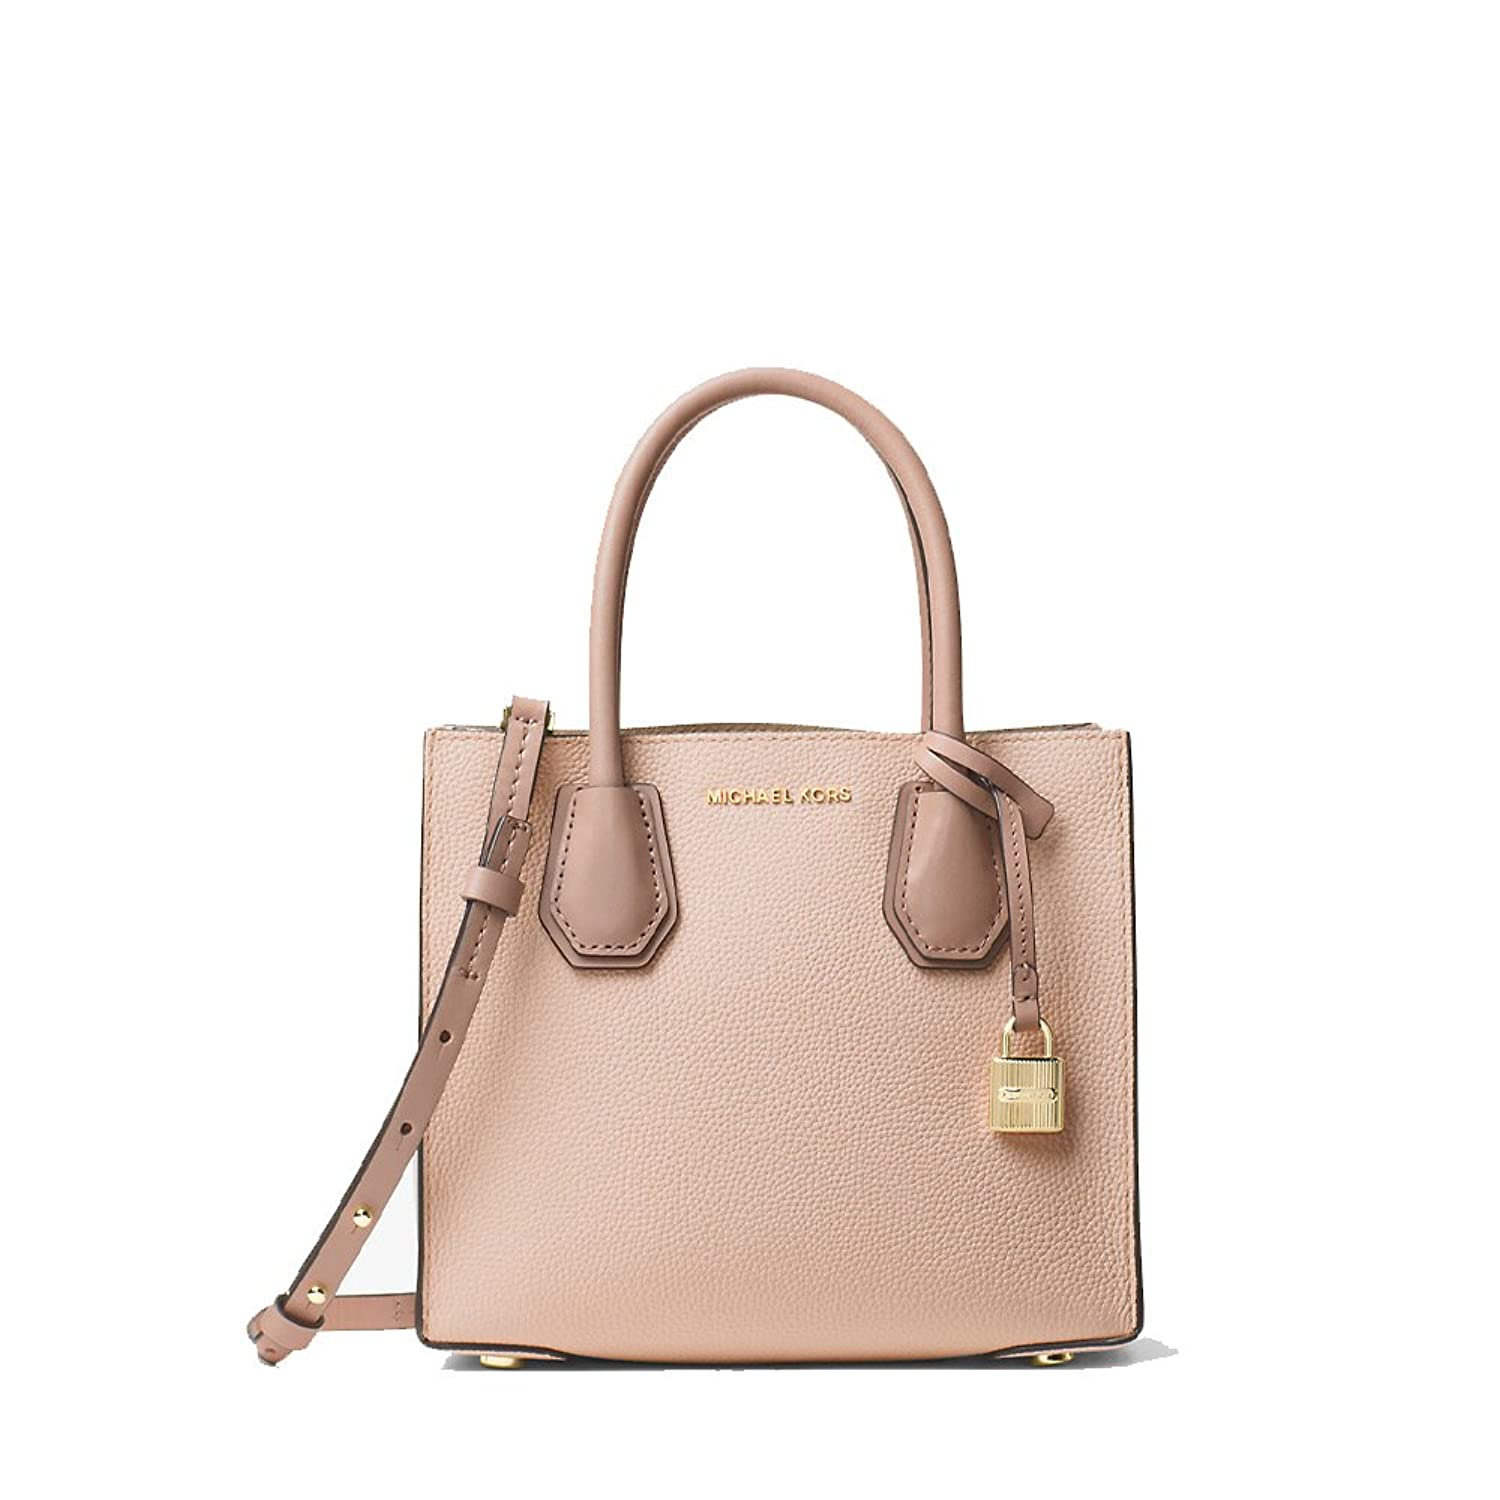 MICHAEL KORS MERCER MEDIUM MESSENGER TRY-TONE SOFT PINK(ピンク) [並行輸入品] B07226NWNW